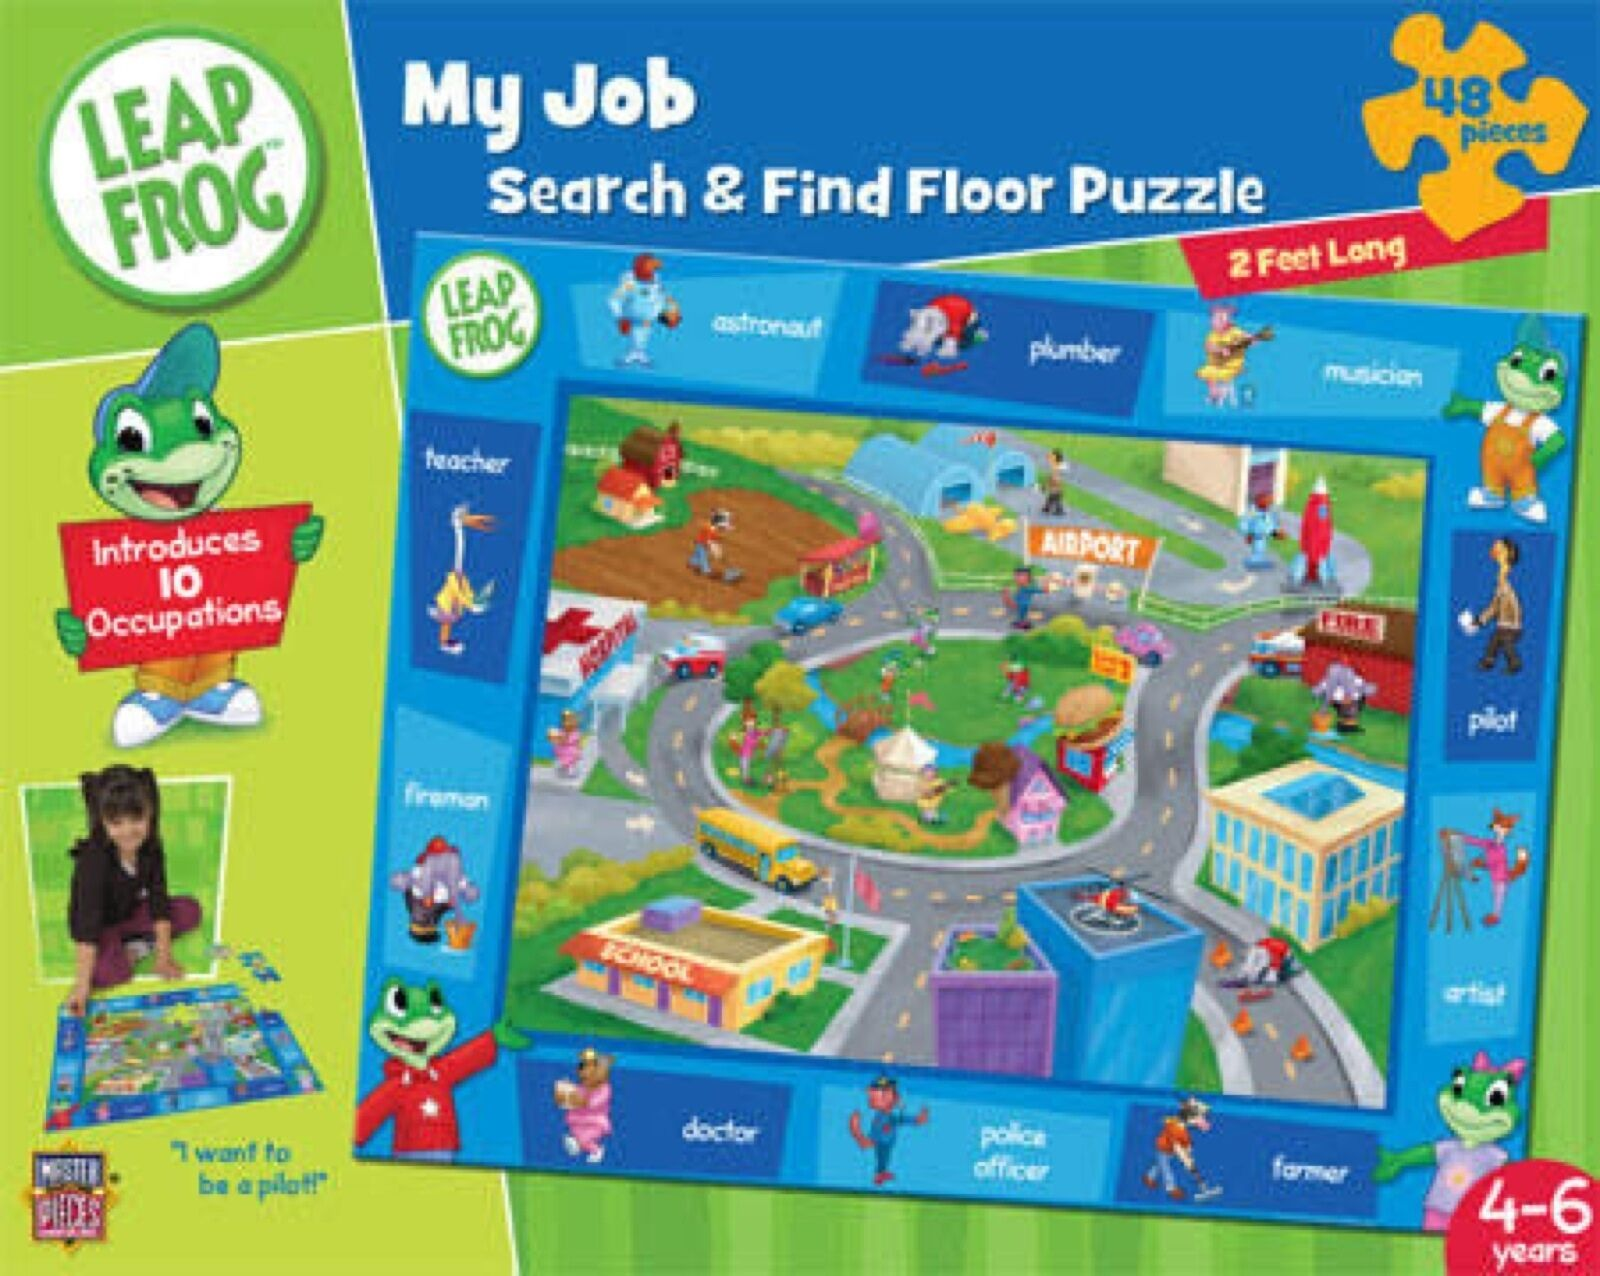 Nuevo Leapfrog mi Juego Search And Find Puzzle Puzzle Puzzle  100% autentico